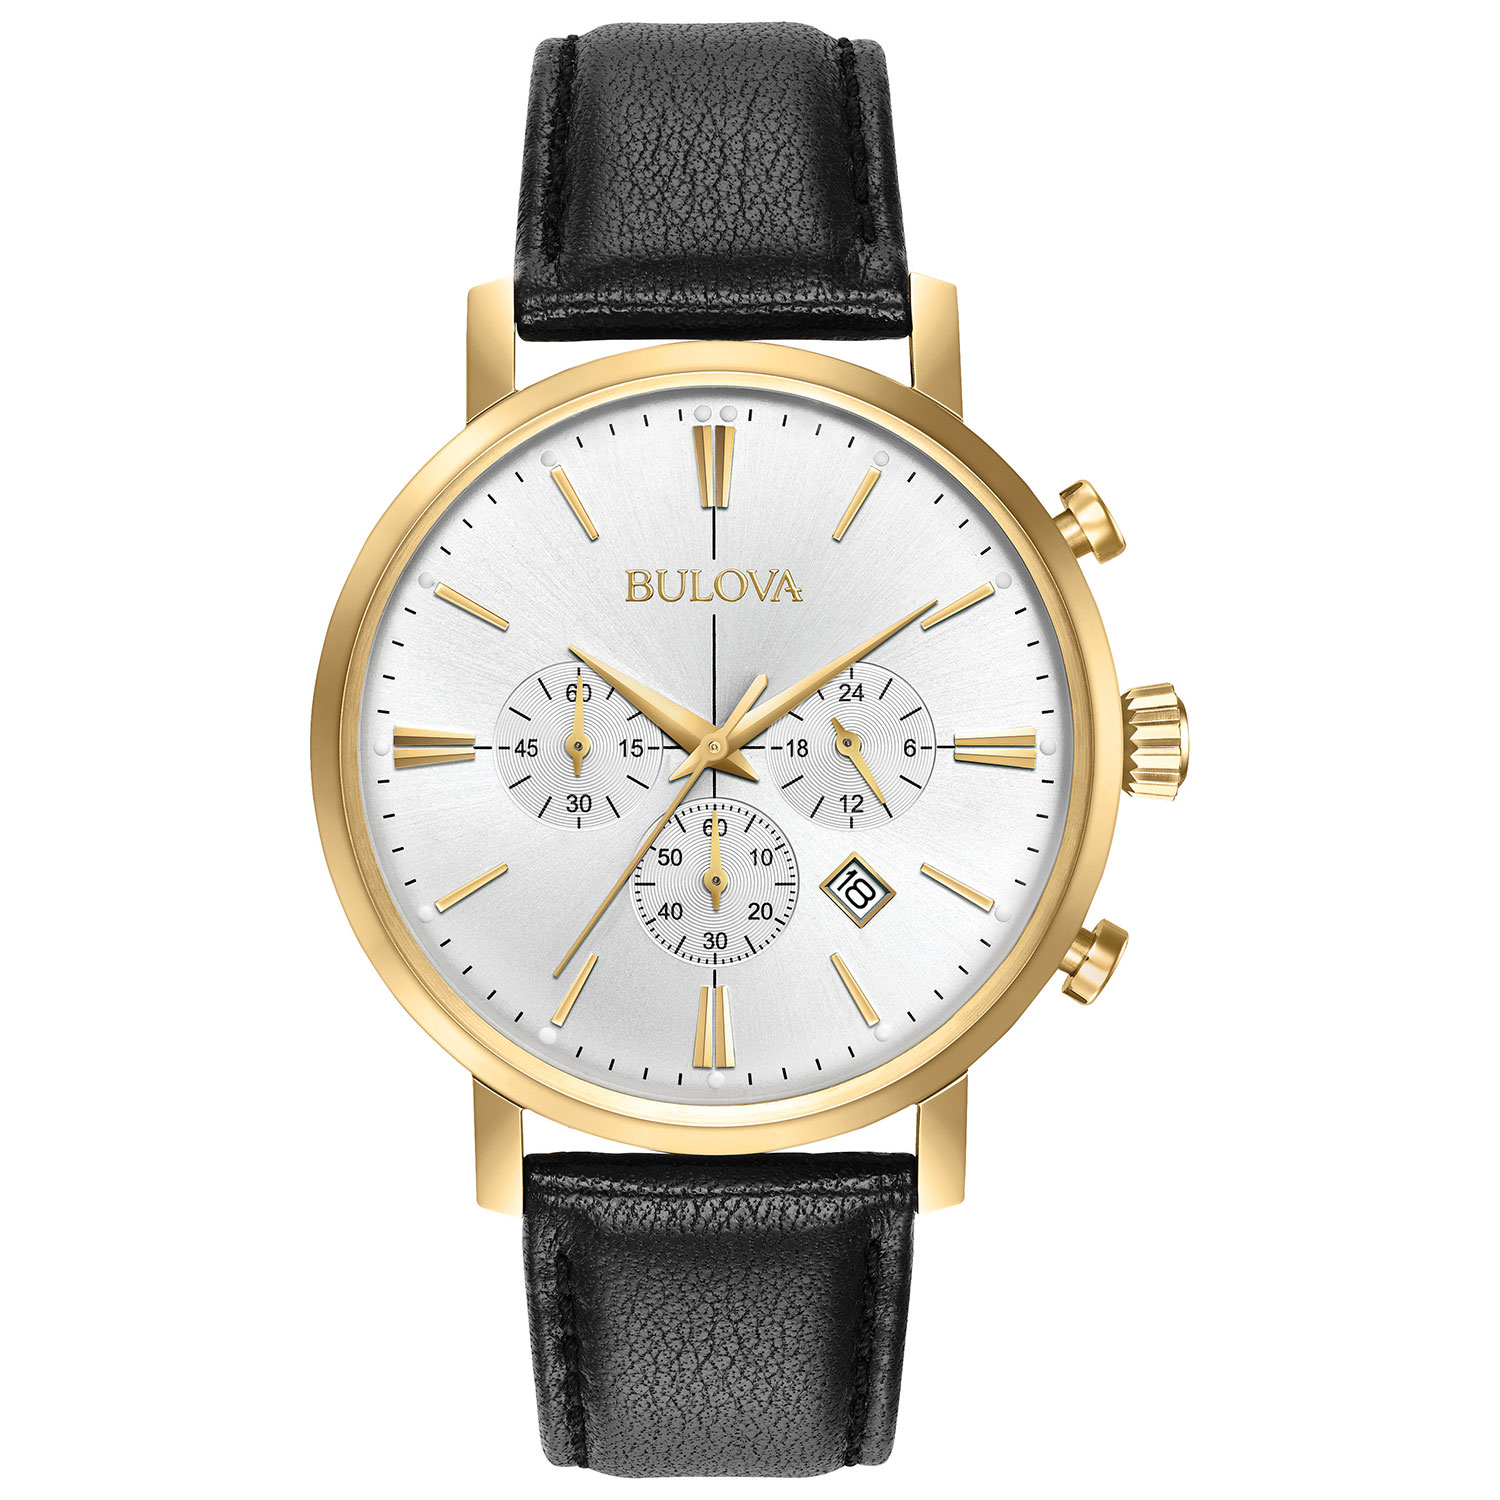 men's Bulova watch with leather strap